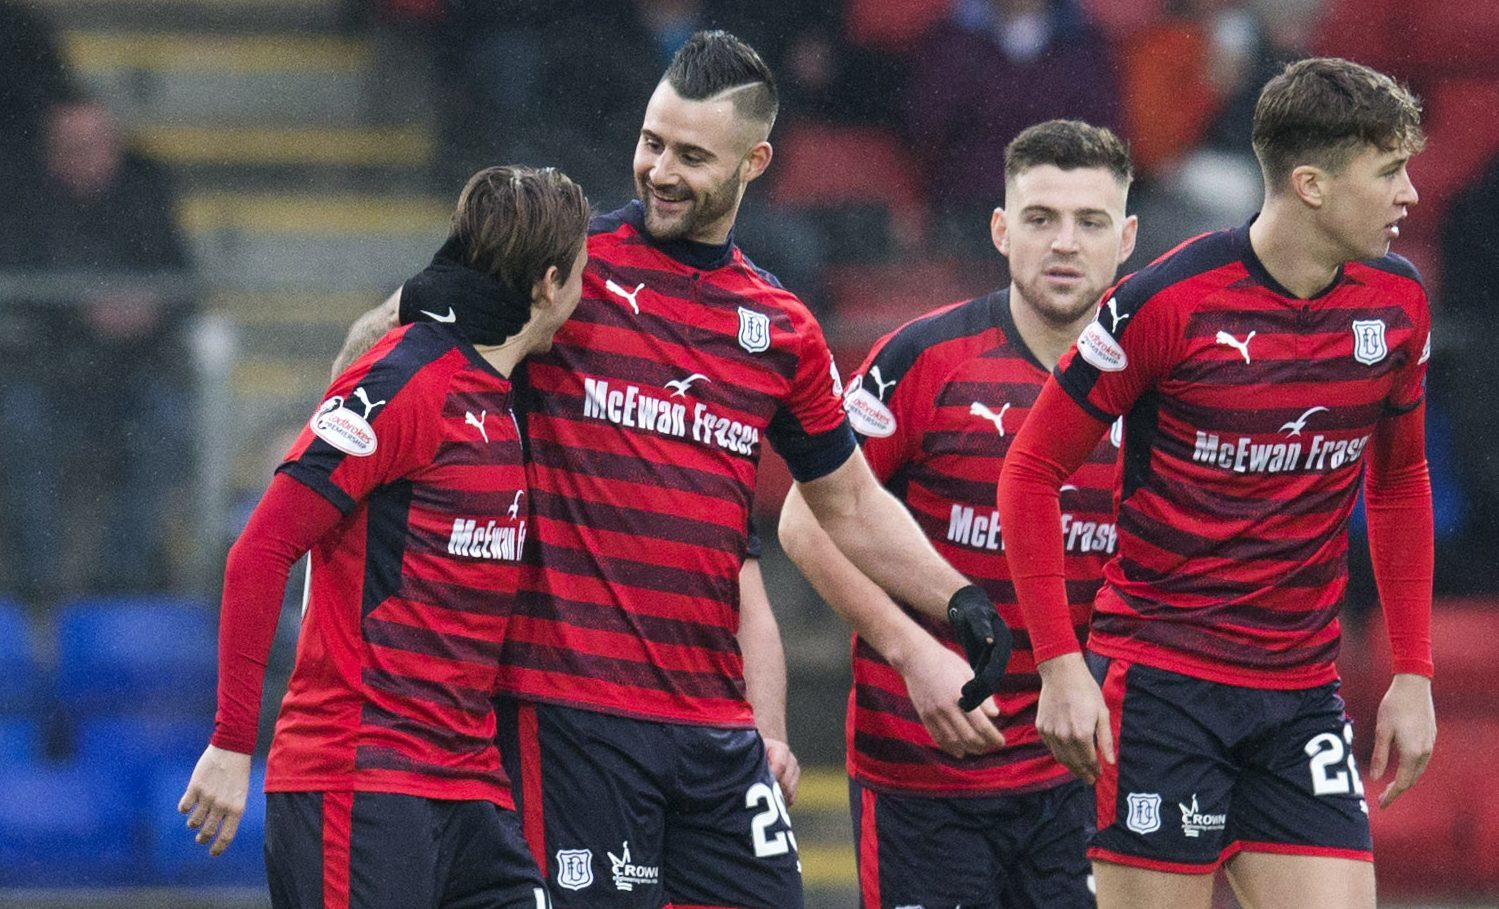 The Dundee players signed off for the winter break with a win in Perth.